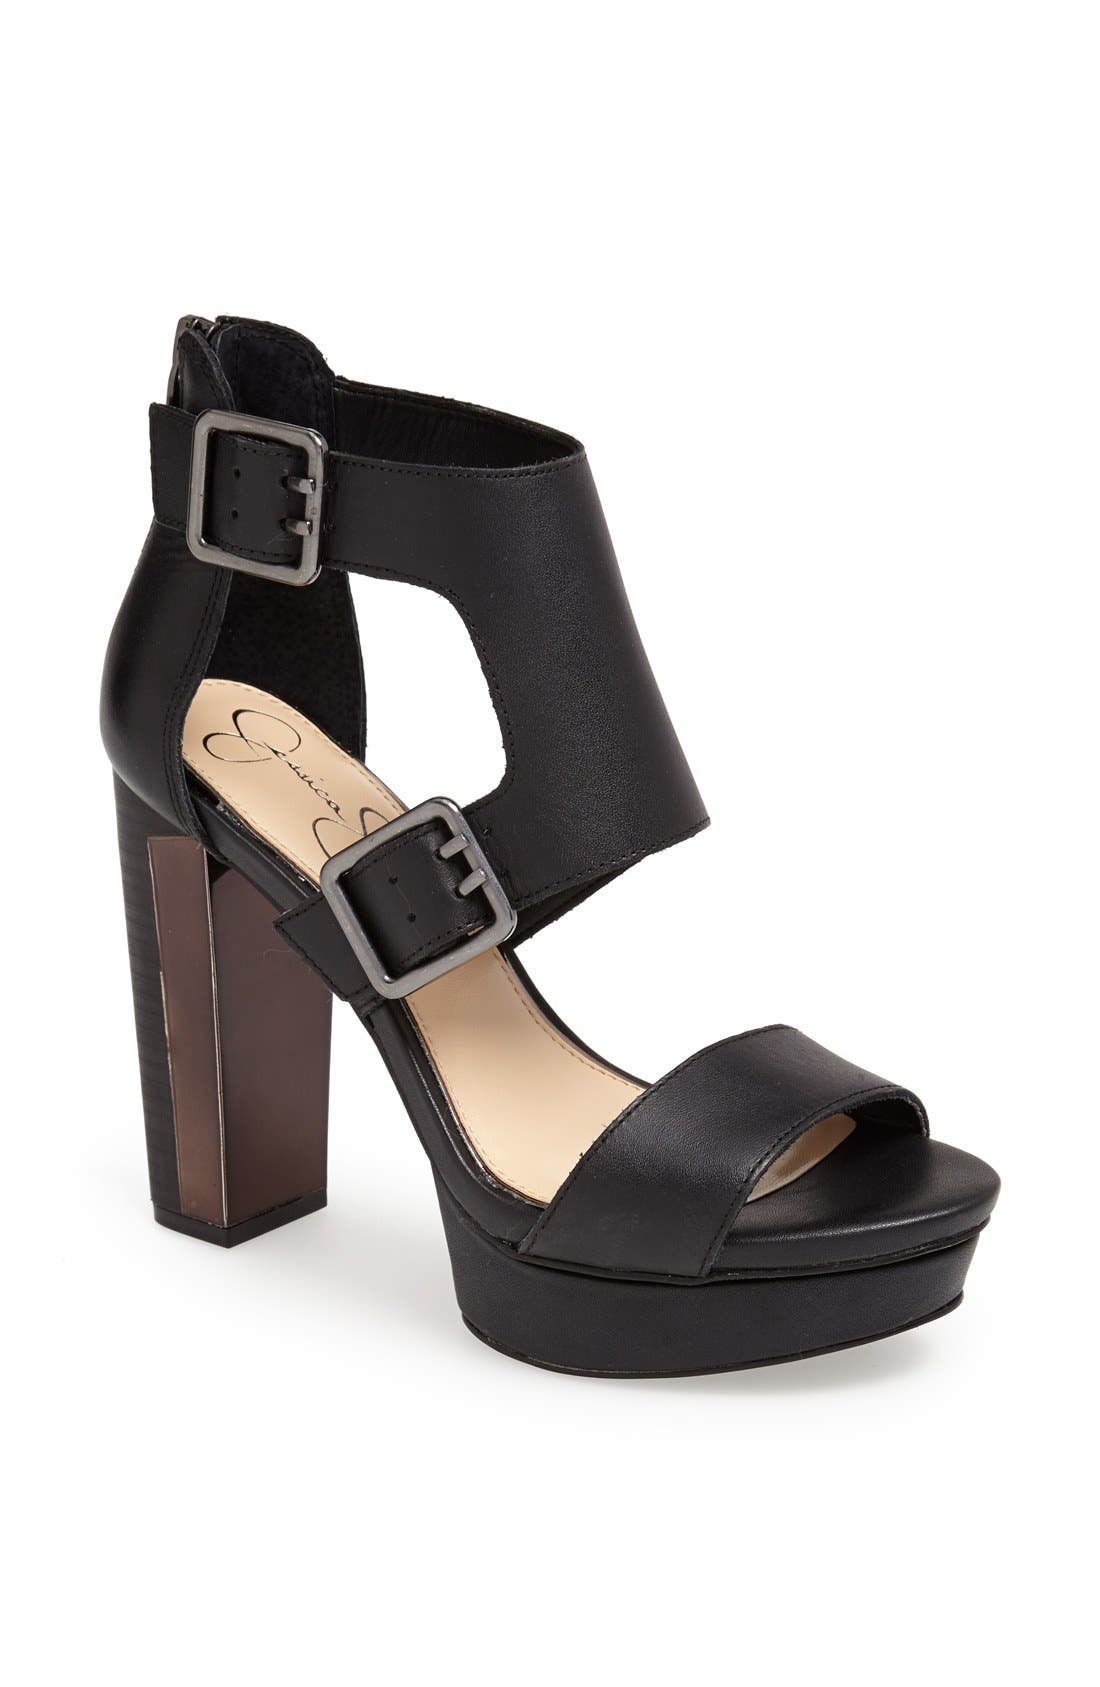 Alternate Image 1 Selected - Jessica Simpson 'Kaitzz' Sandal